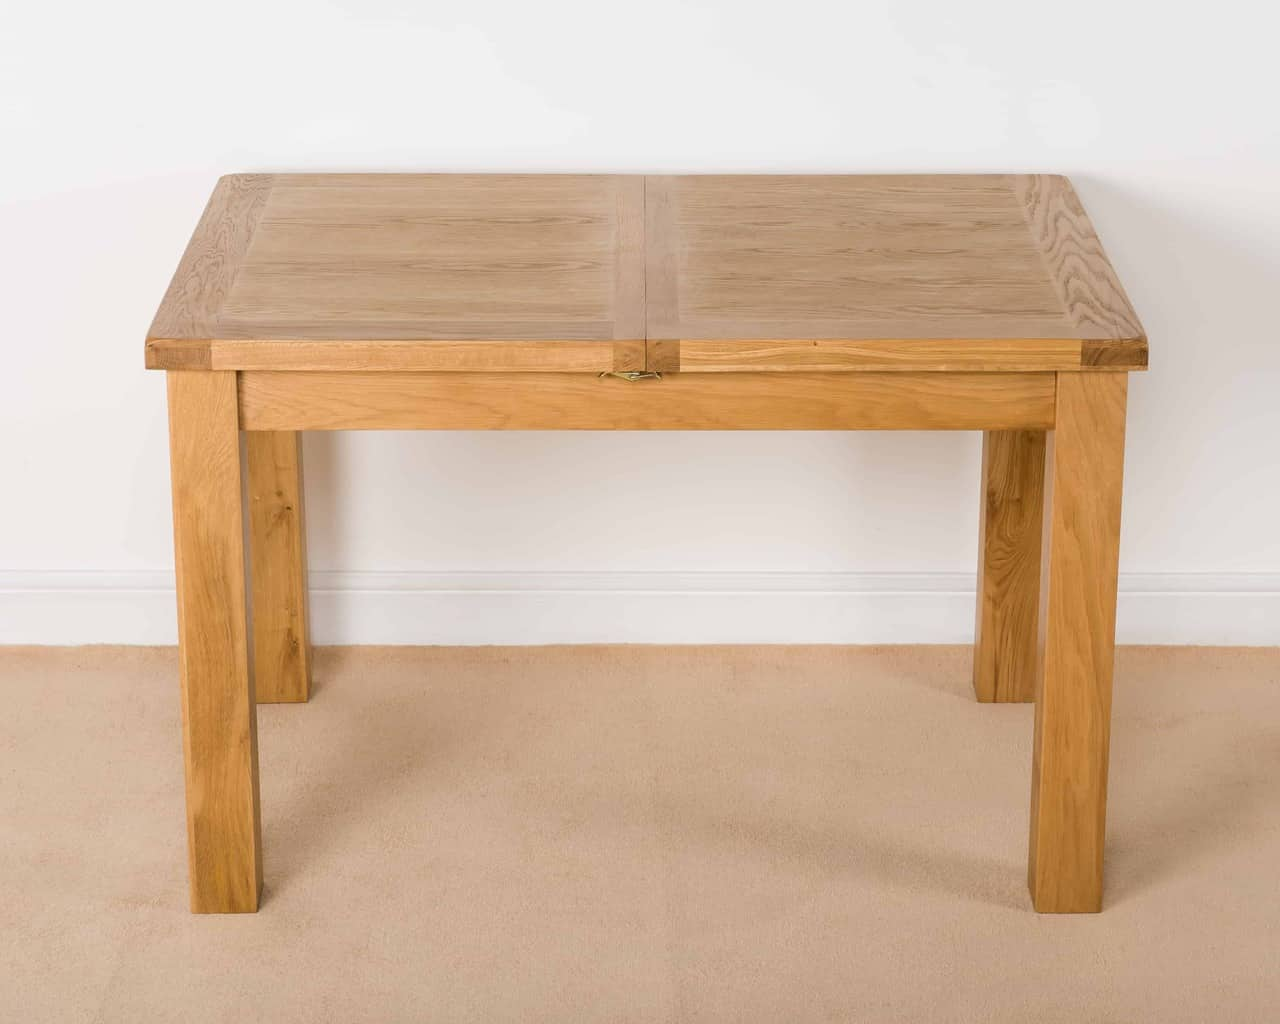 Small Extension Dining Tables Shrewsbury Solid Chunky Wood Rustic Oak Small Narrow